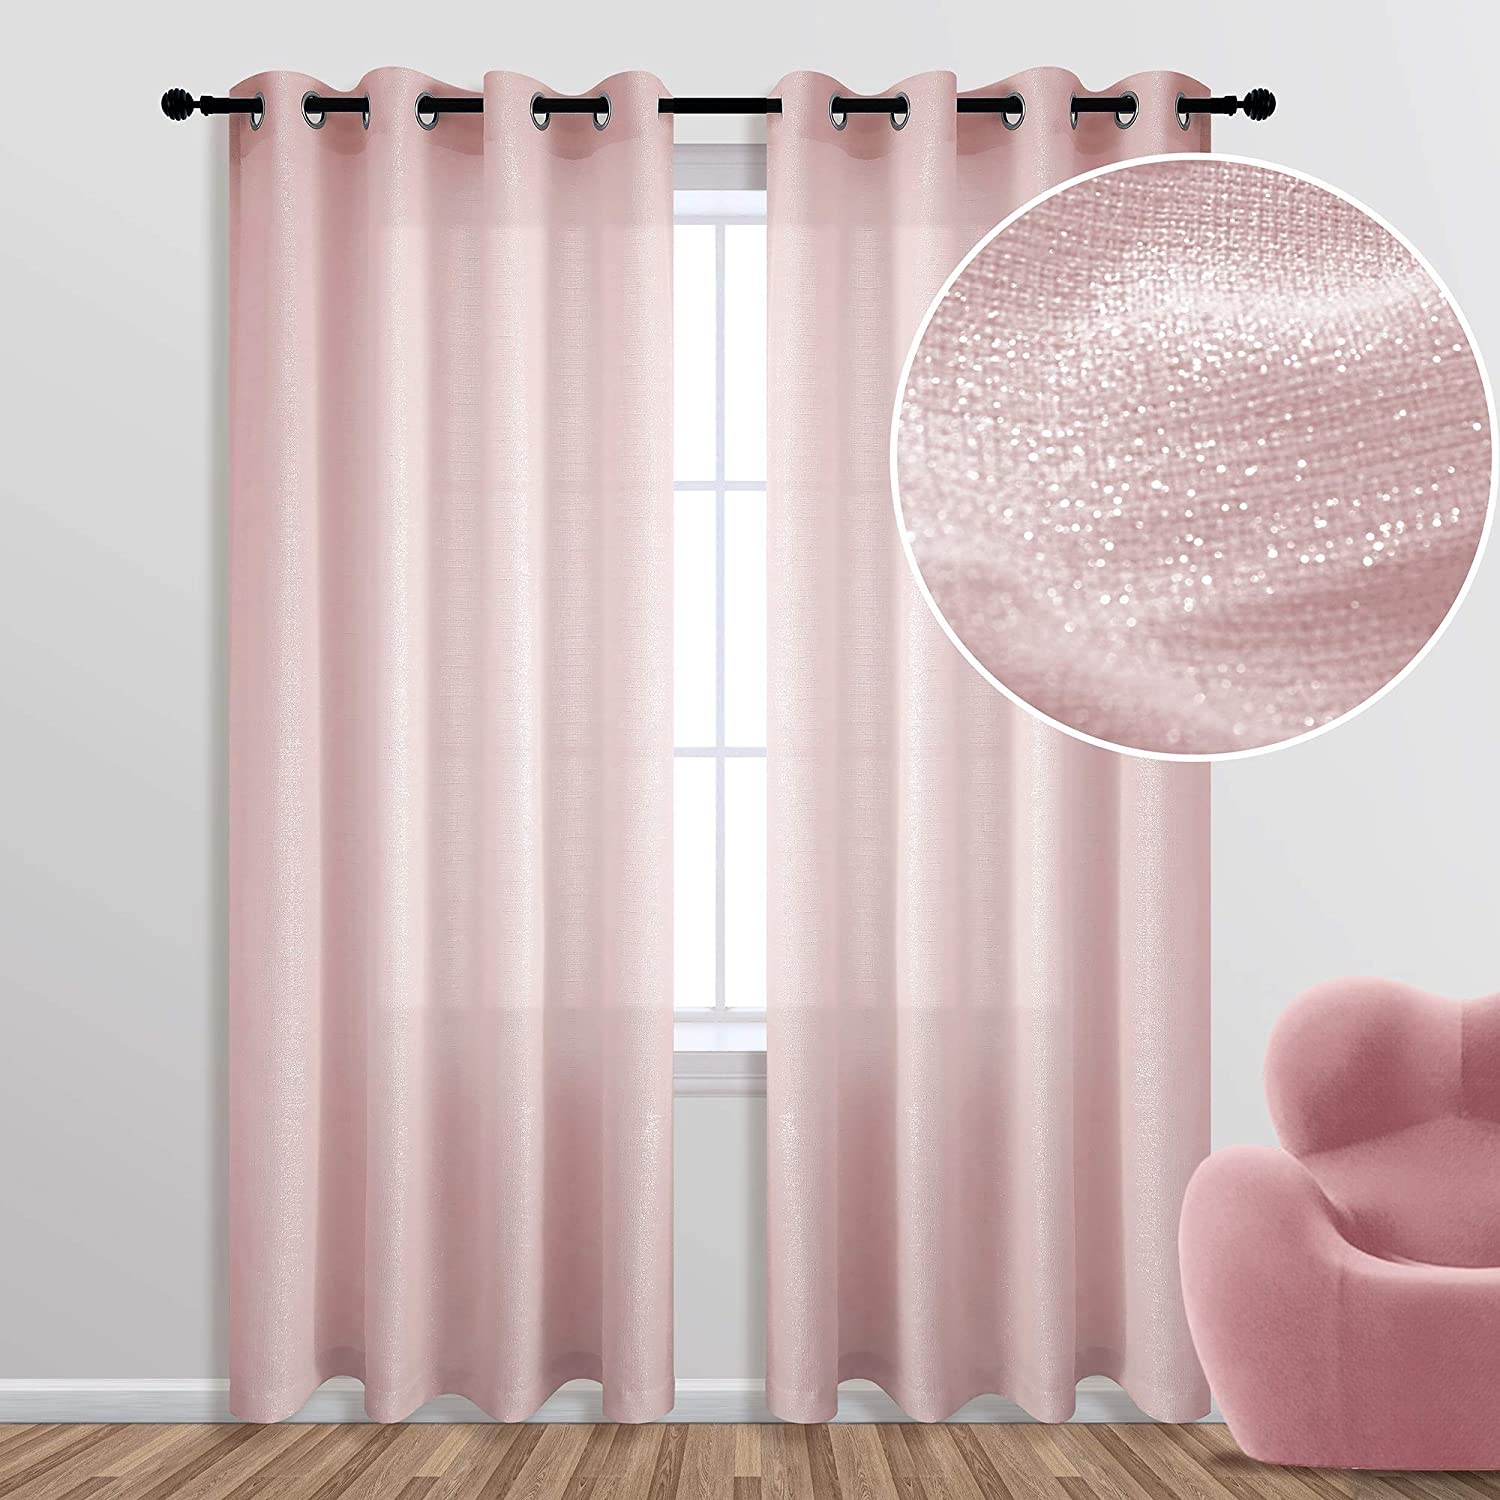 KOUFALL Rose Gold Curtains 84 Inch Length for Bedroom 1 Single Panel Grommet Window Semi Sheer Privacy Light Filtering Sparkle Metallic Shimmer Blush Pink Glitter Curtains for Girls Room Living Room